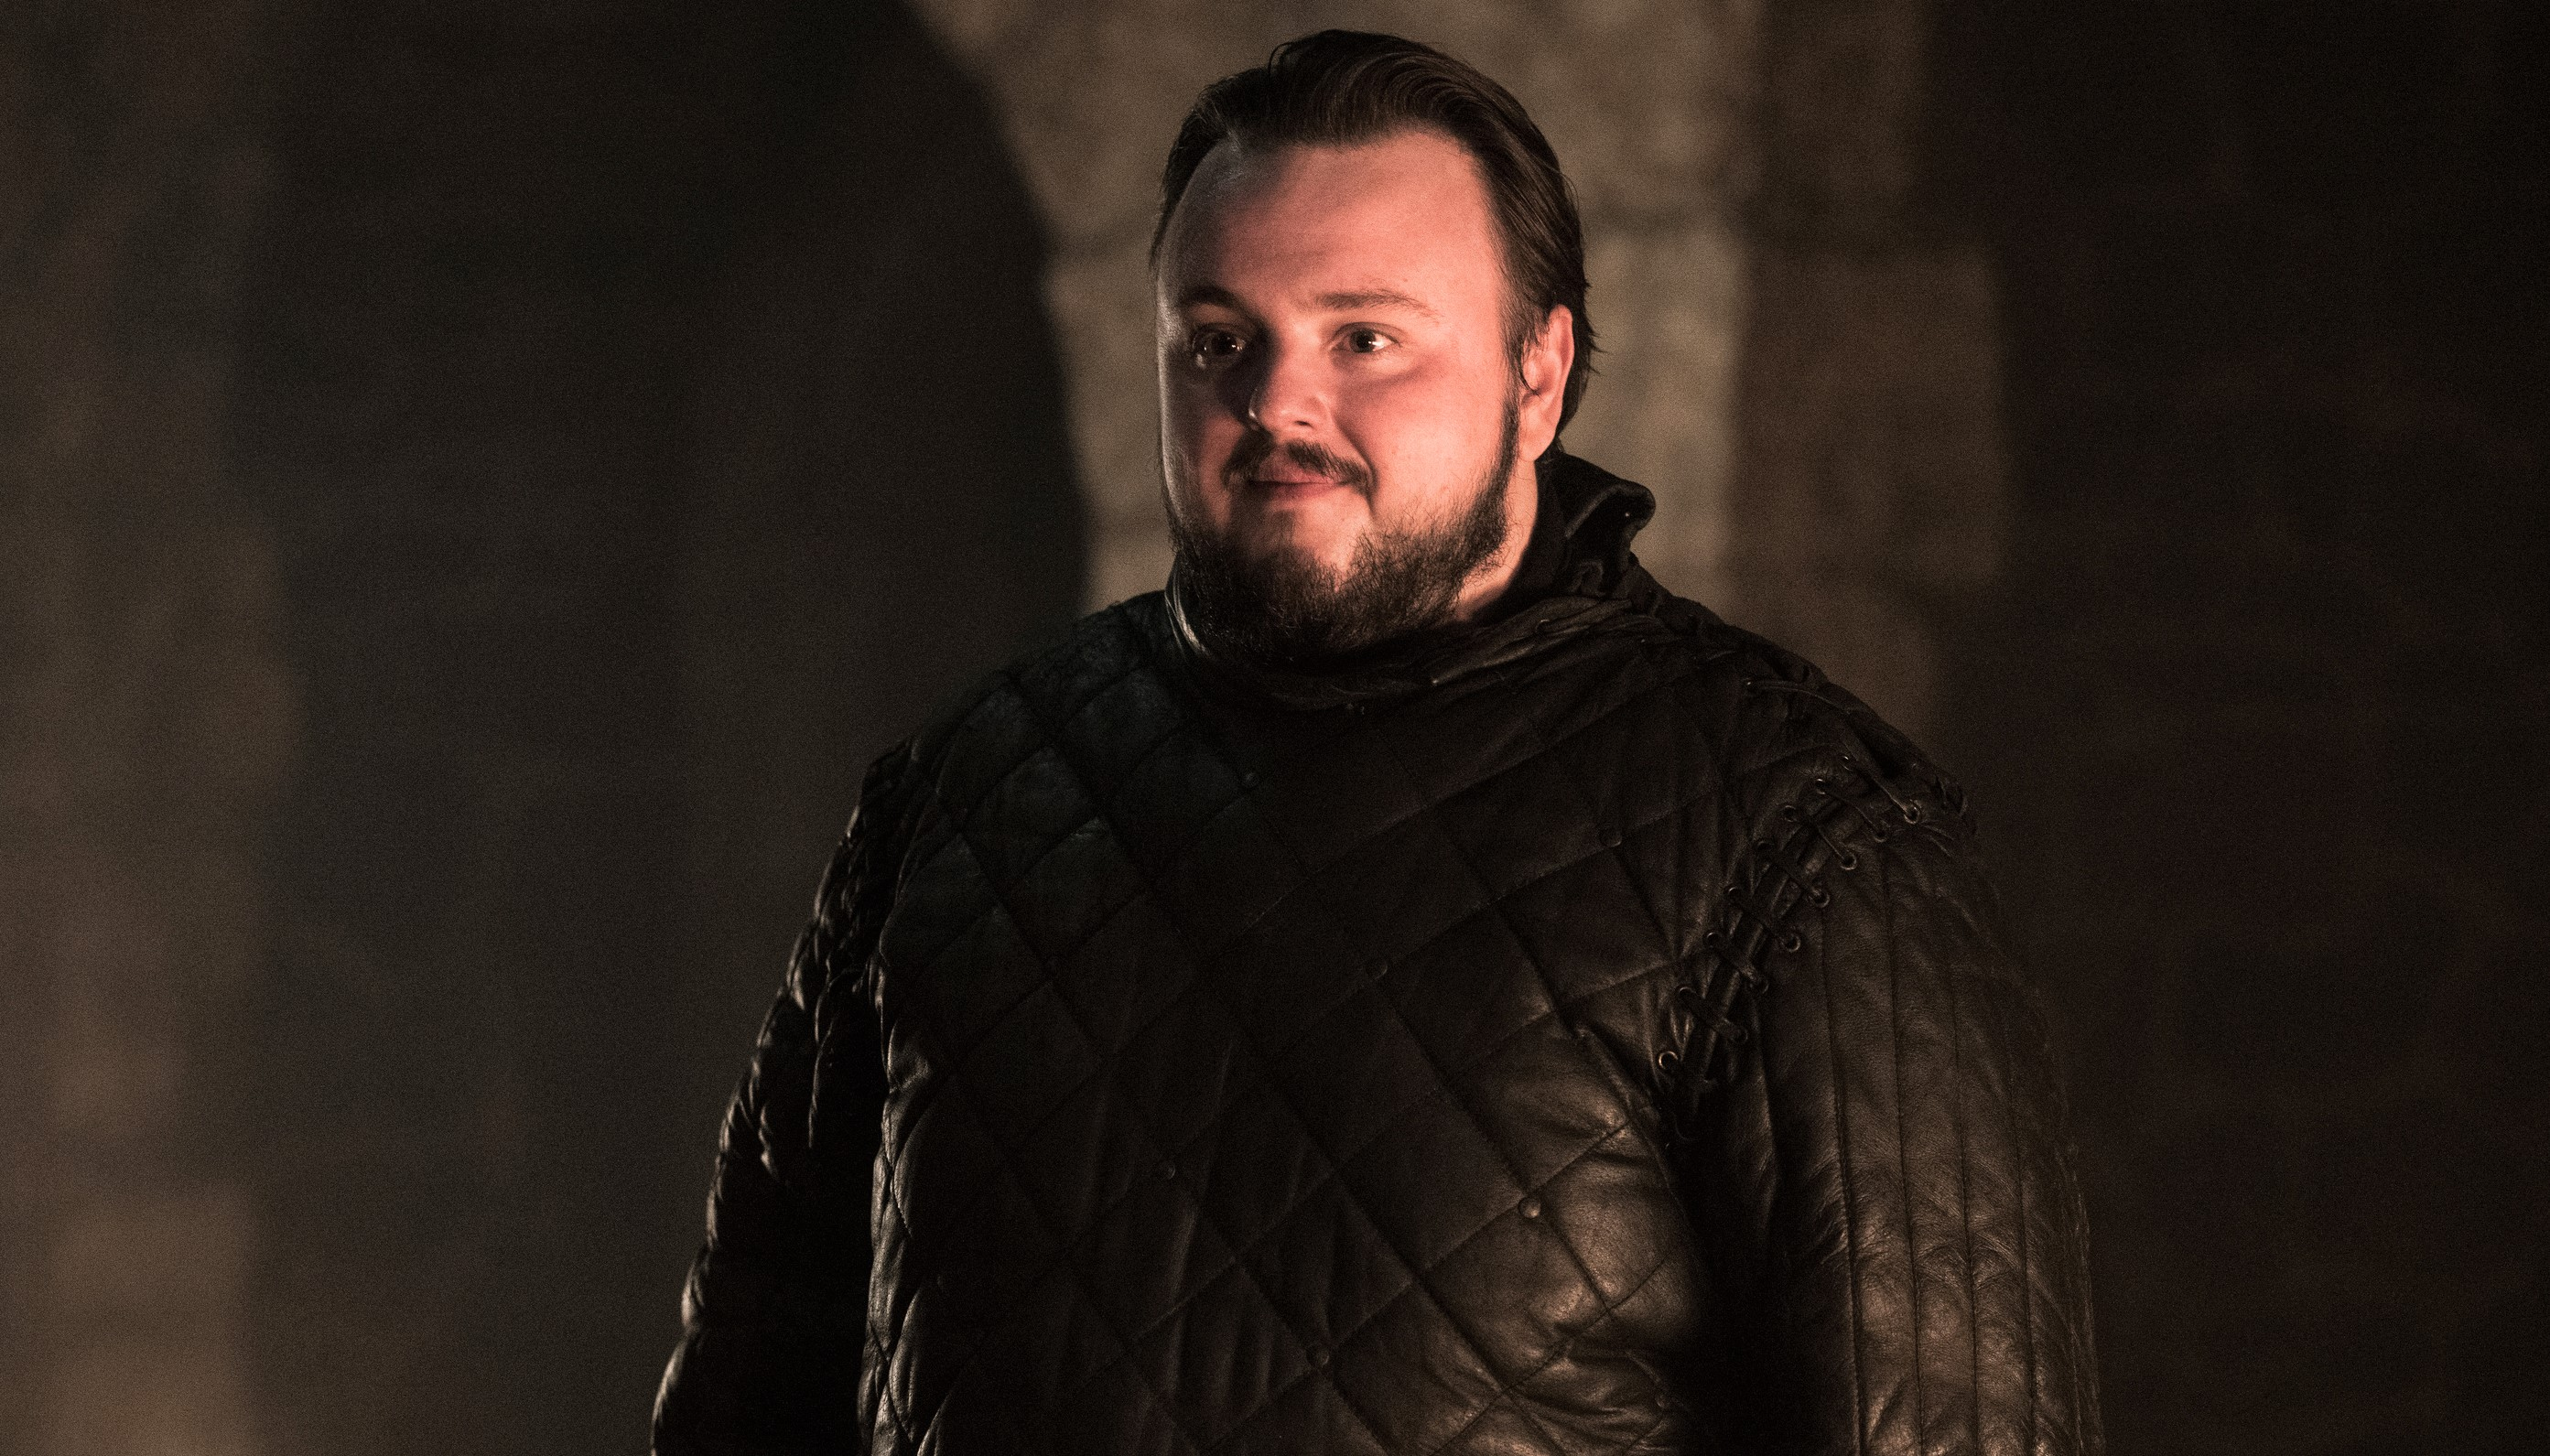 Sam Tarly, Winterfell, Season 8